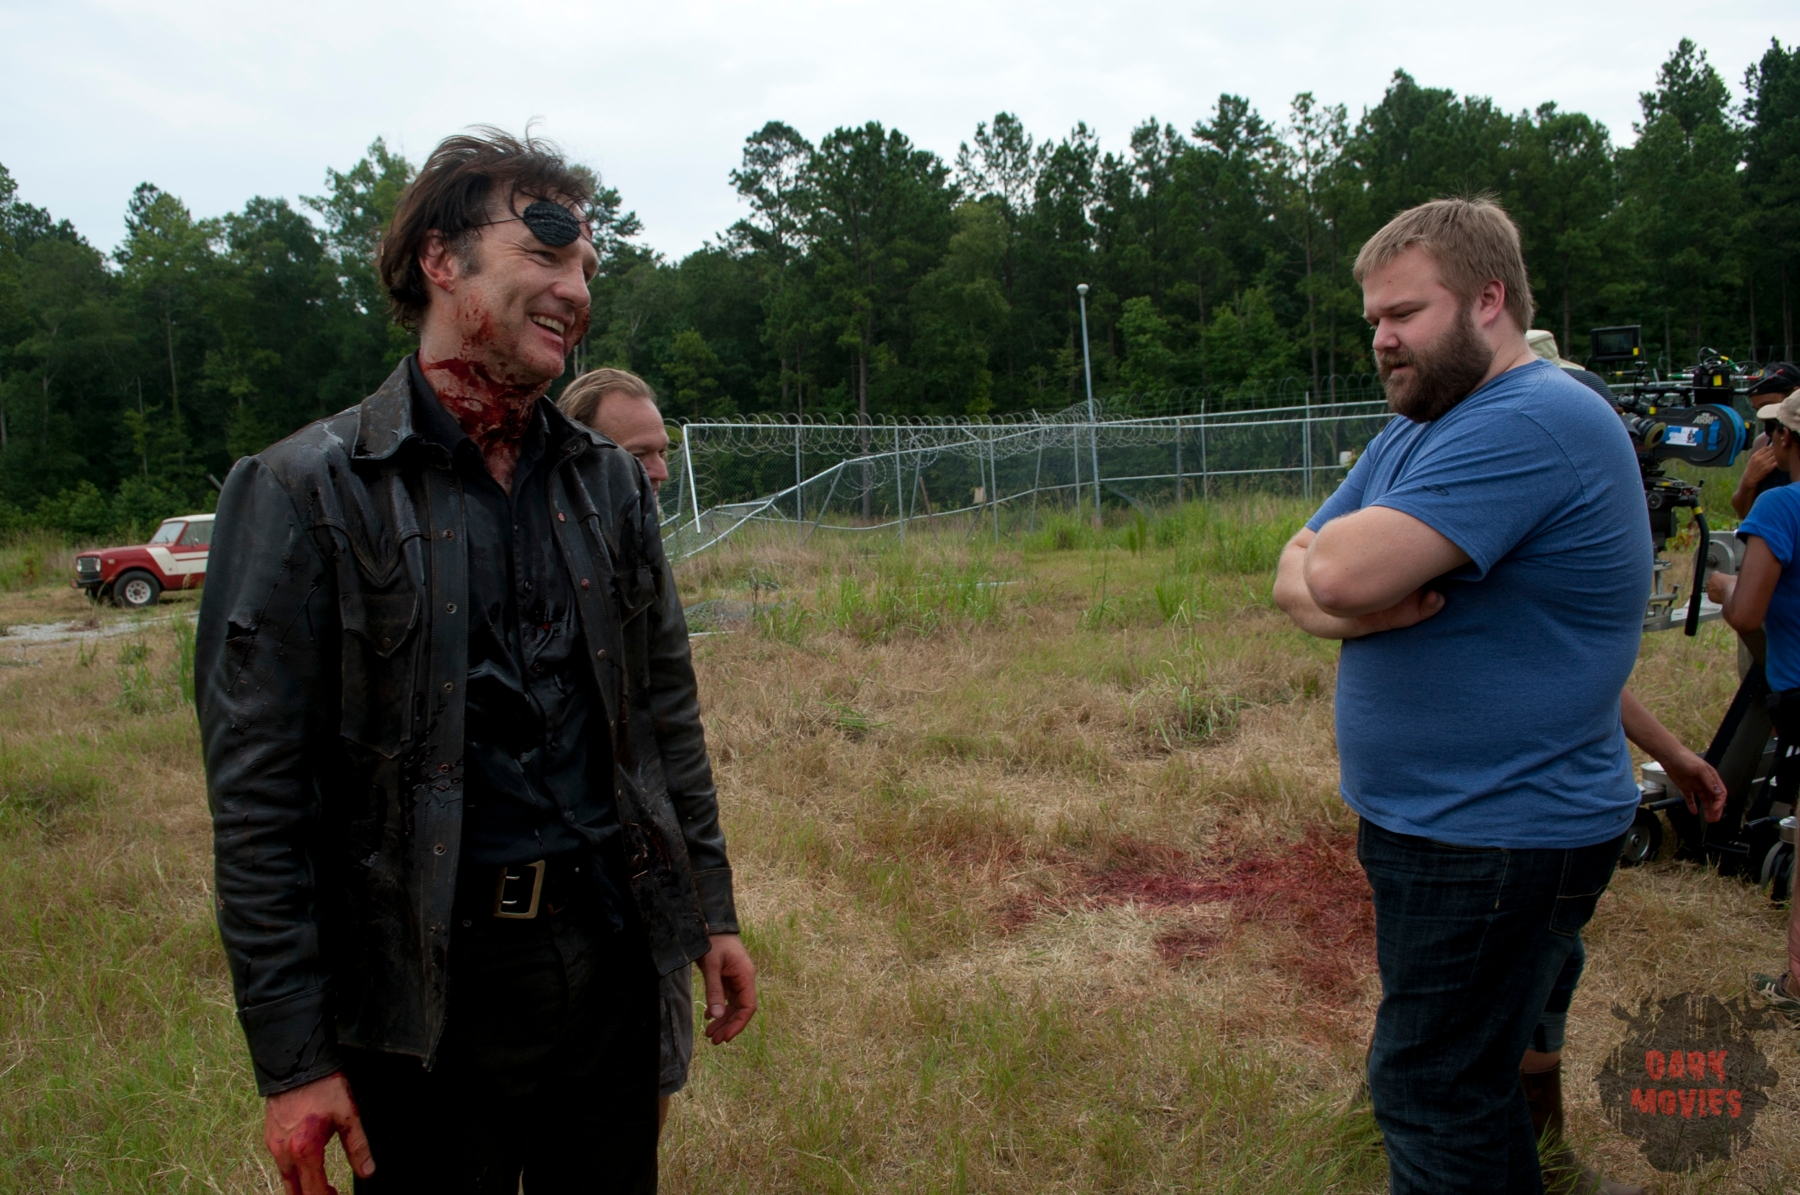 The Governor (David Morrissey) and Robert Kirkman - The Walking Dead _ Season 4, Episode 8 _ BTS - Photo Credit: Gene Page/AMC